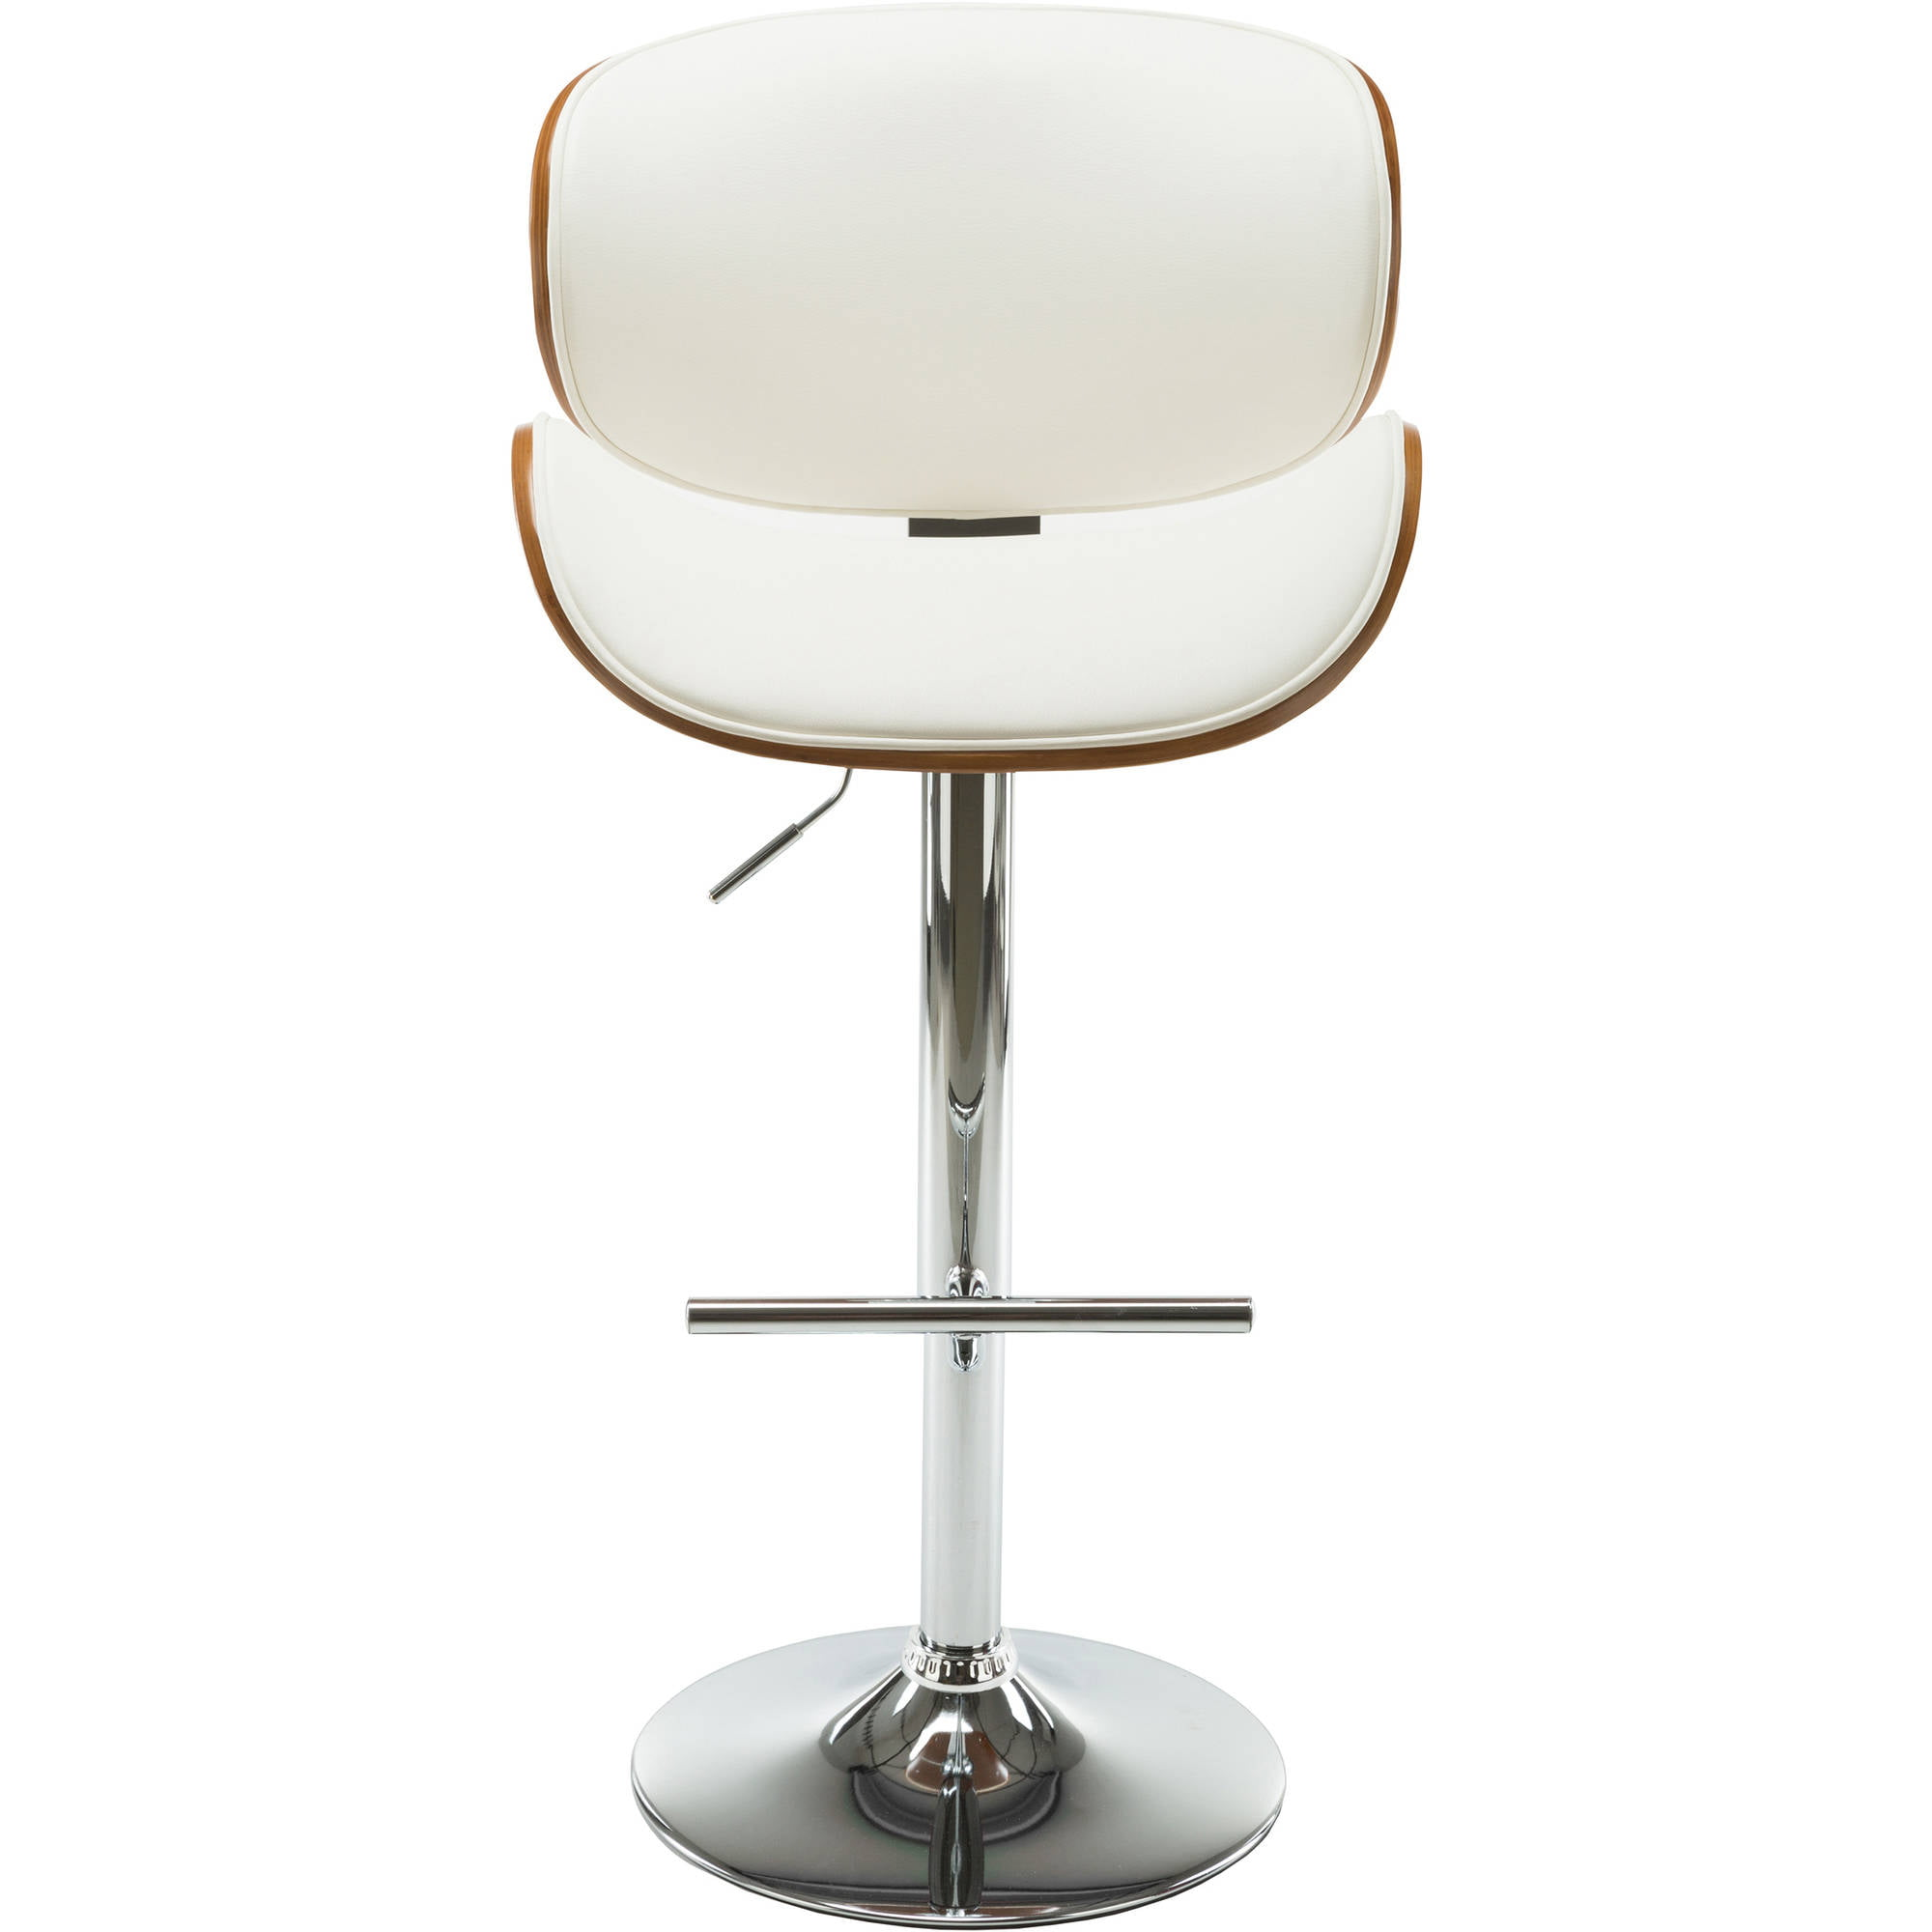 Modern Contemporary Swivel Walnut Bentwood Lift Adjustable Height Bar Stool with Curved Seat and Back (White) by AC Pacific